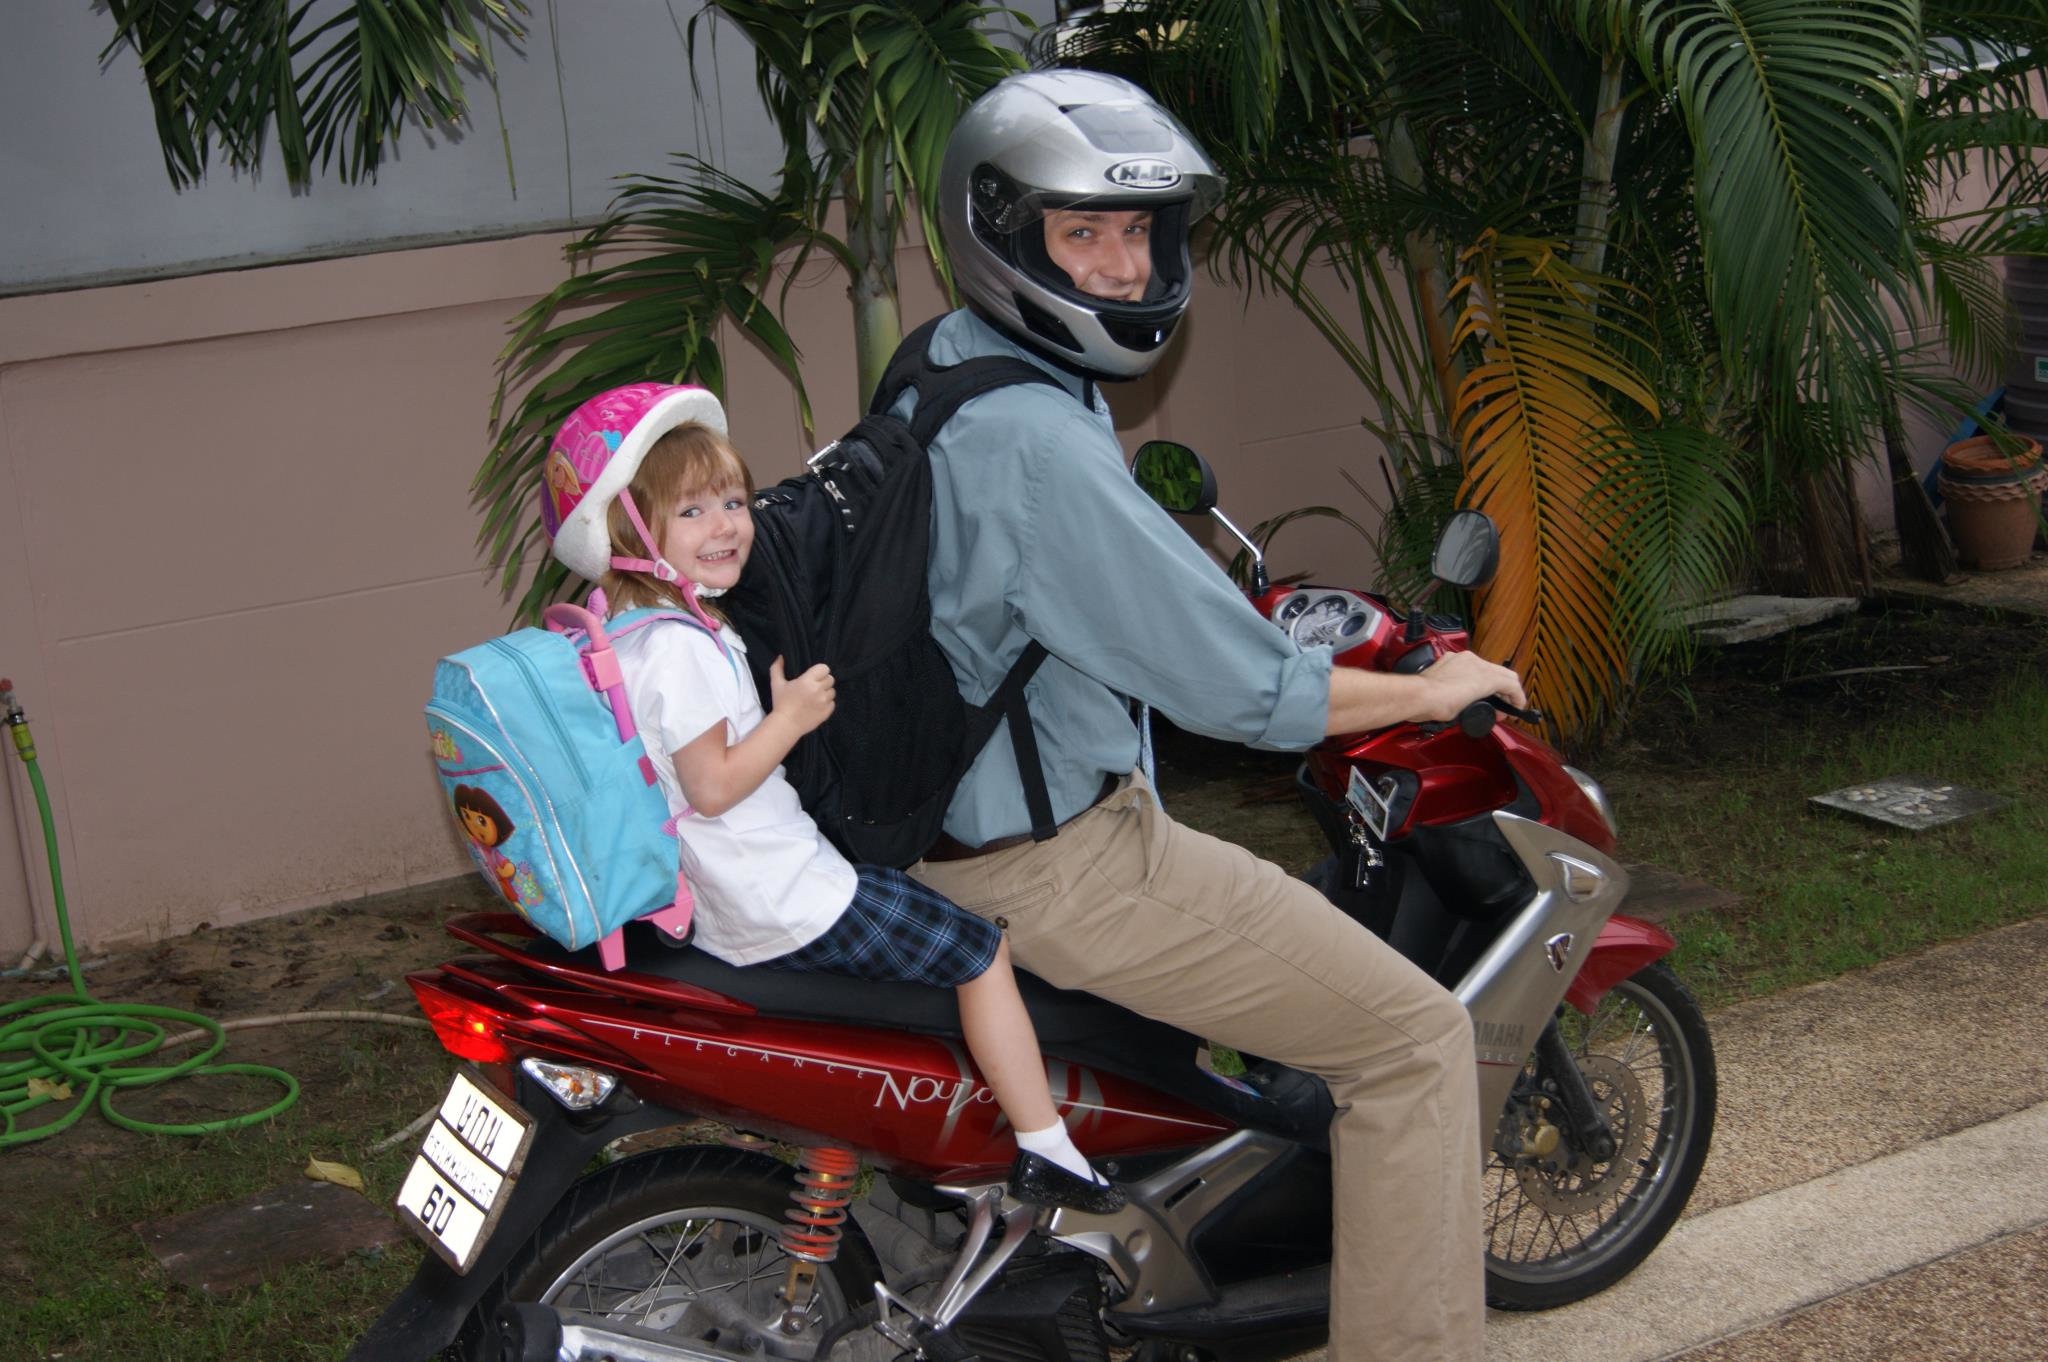 Dominick taking his daughter Giada to school.